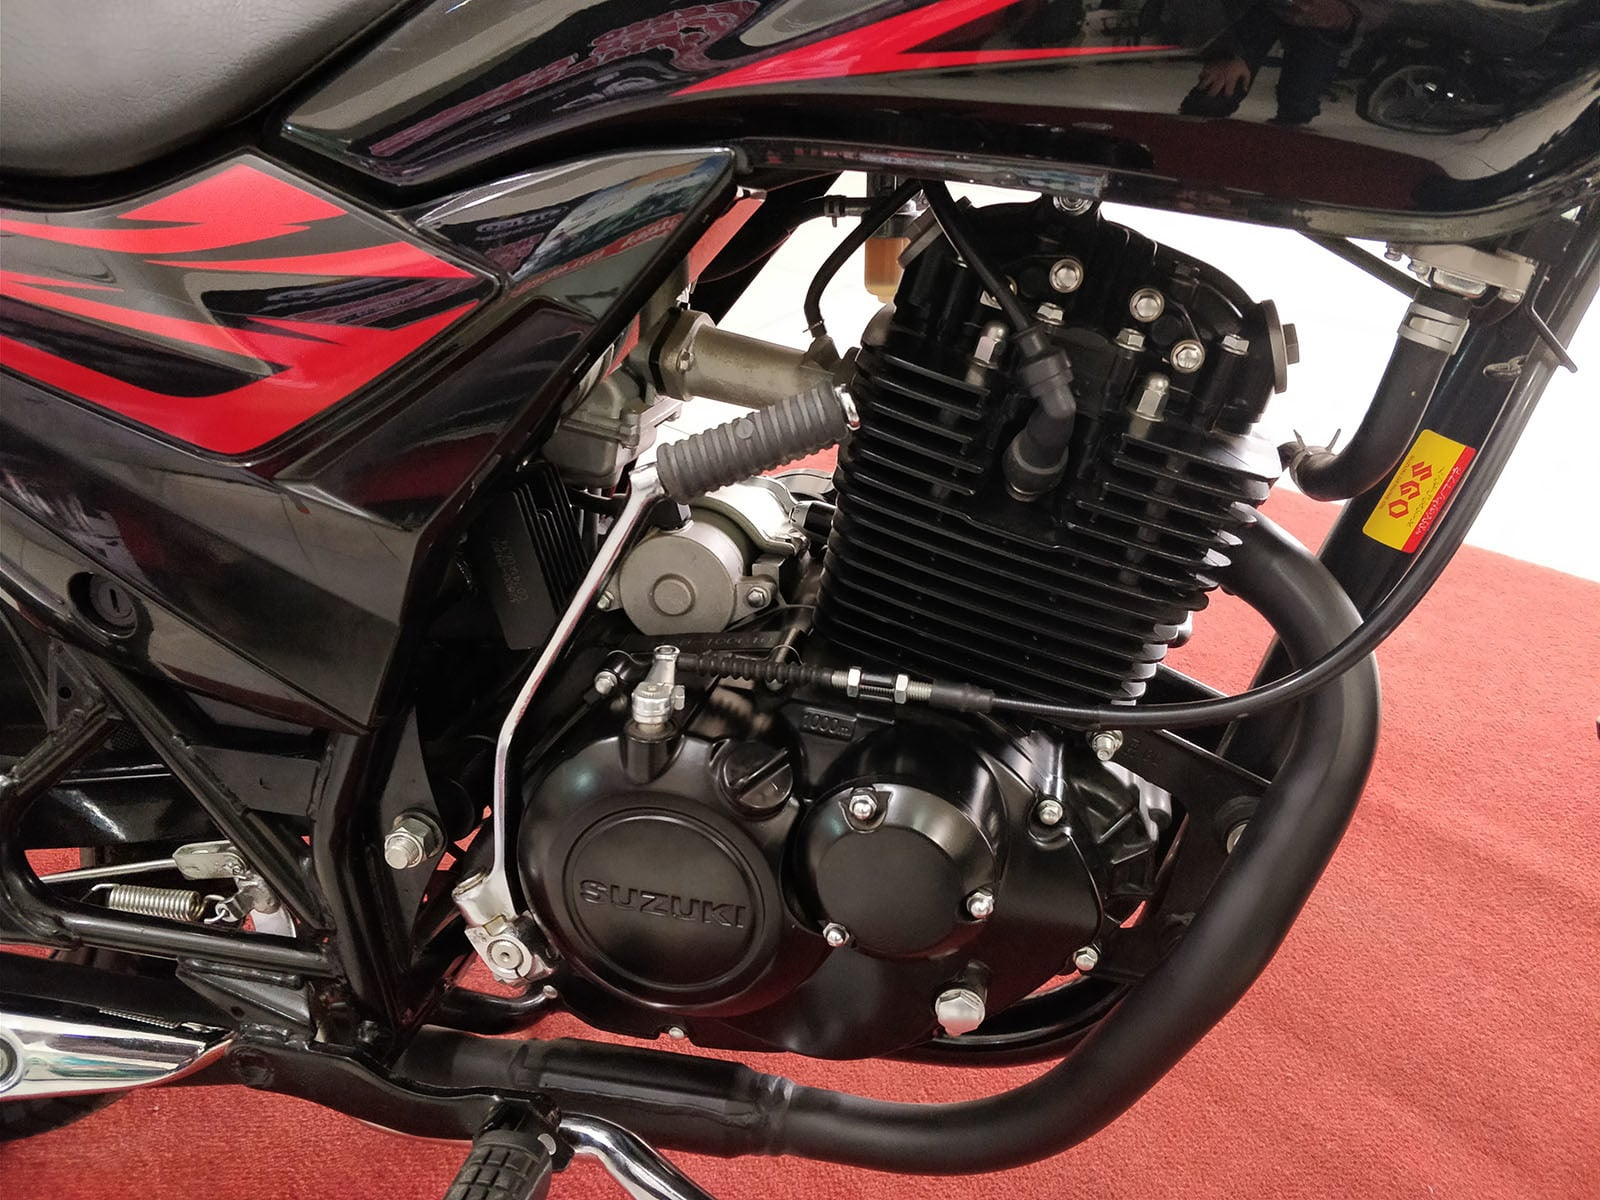 Should you buy the new Suzuki GR150 motorcycle? - Business